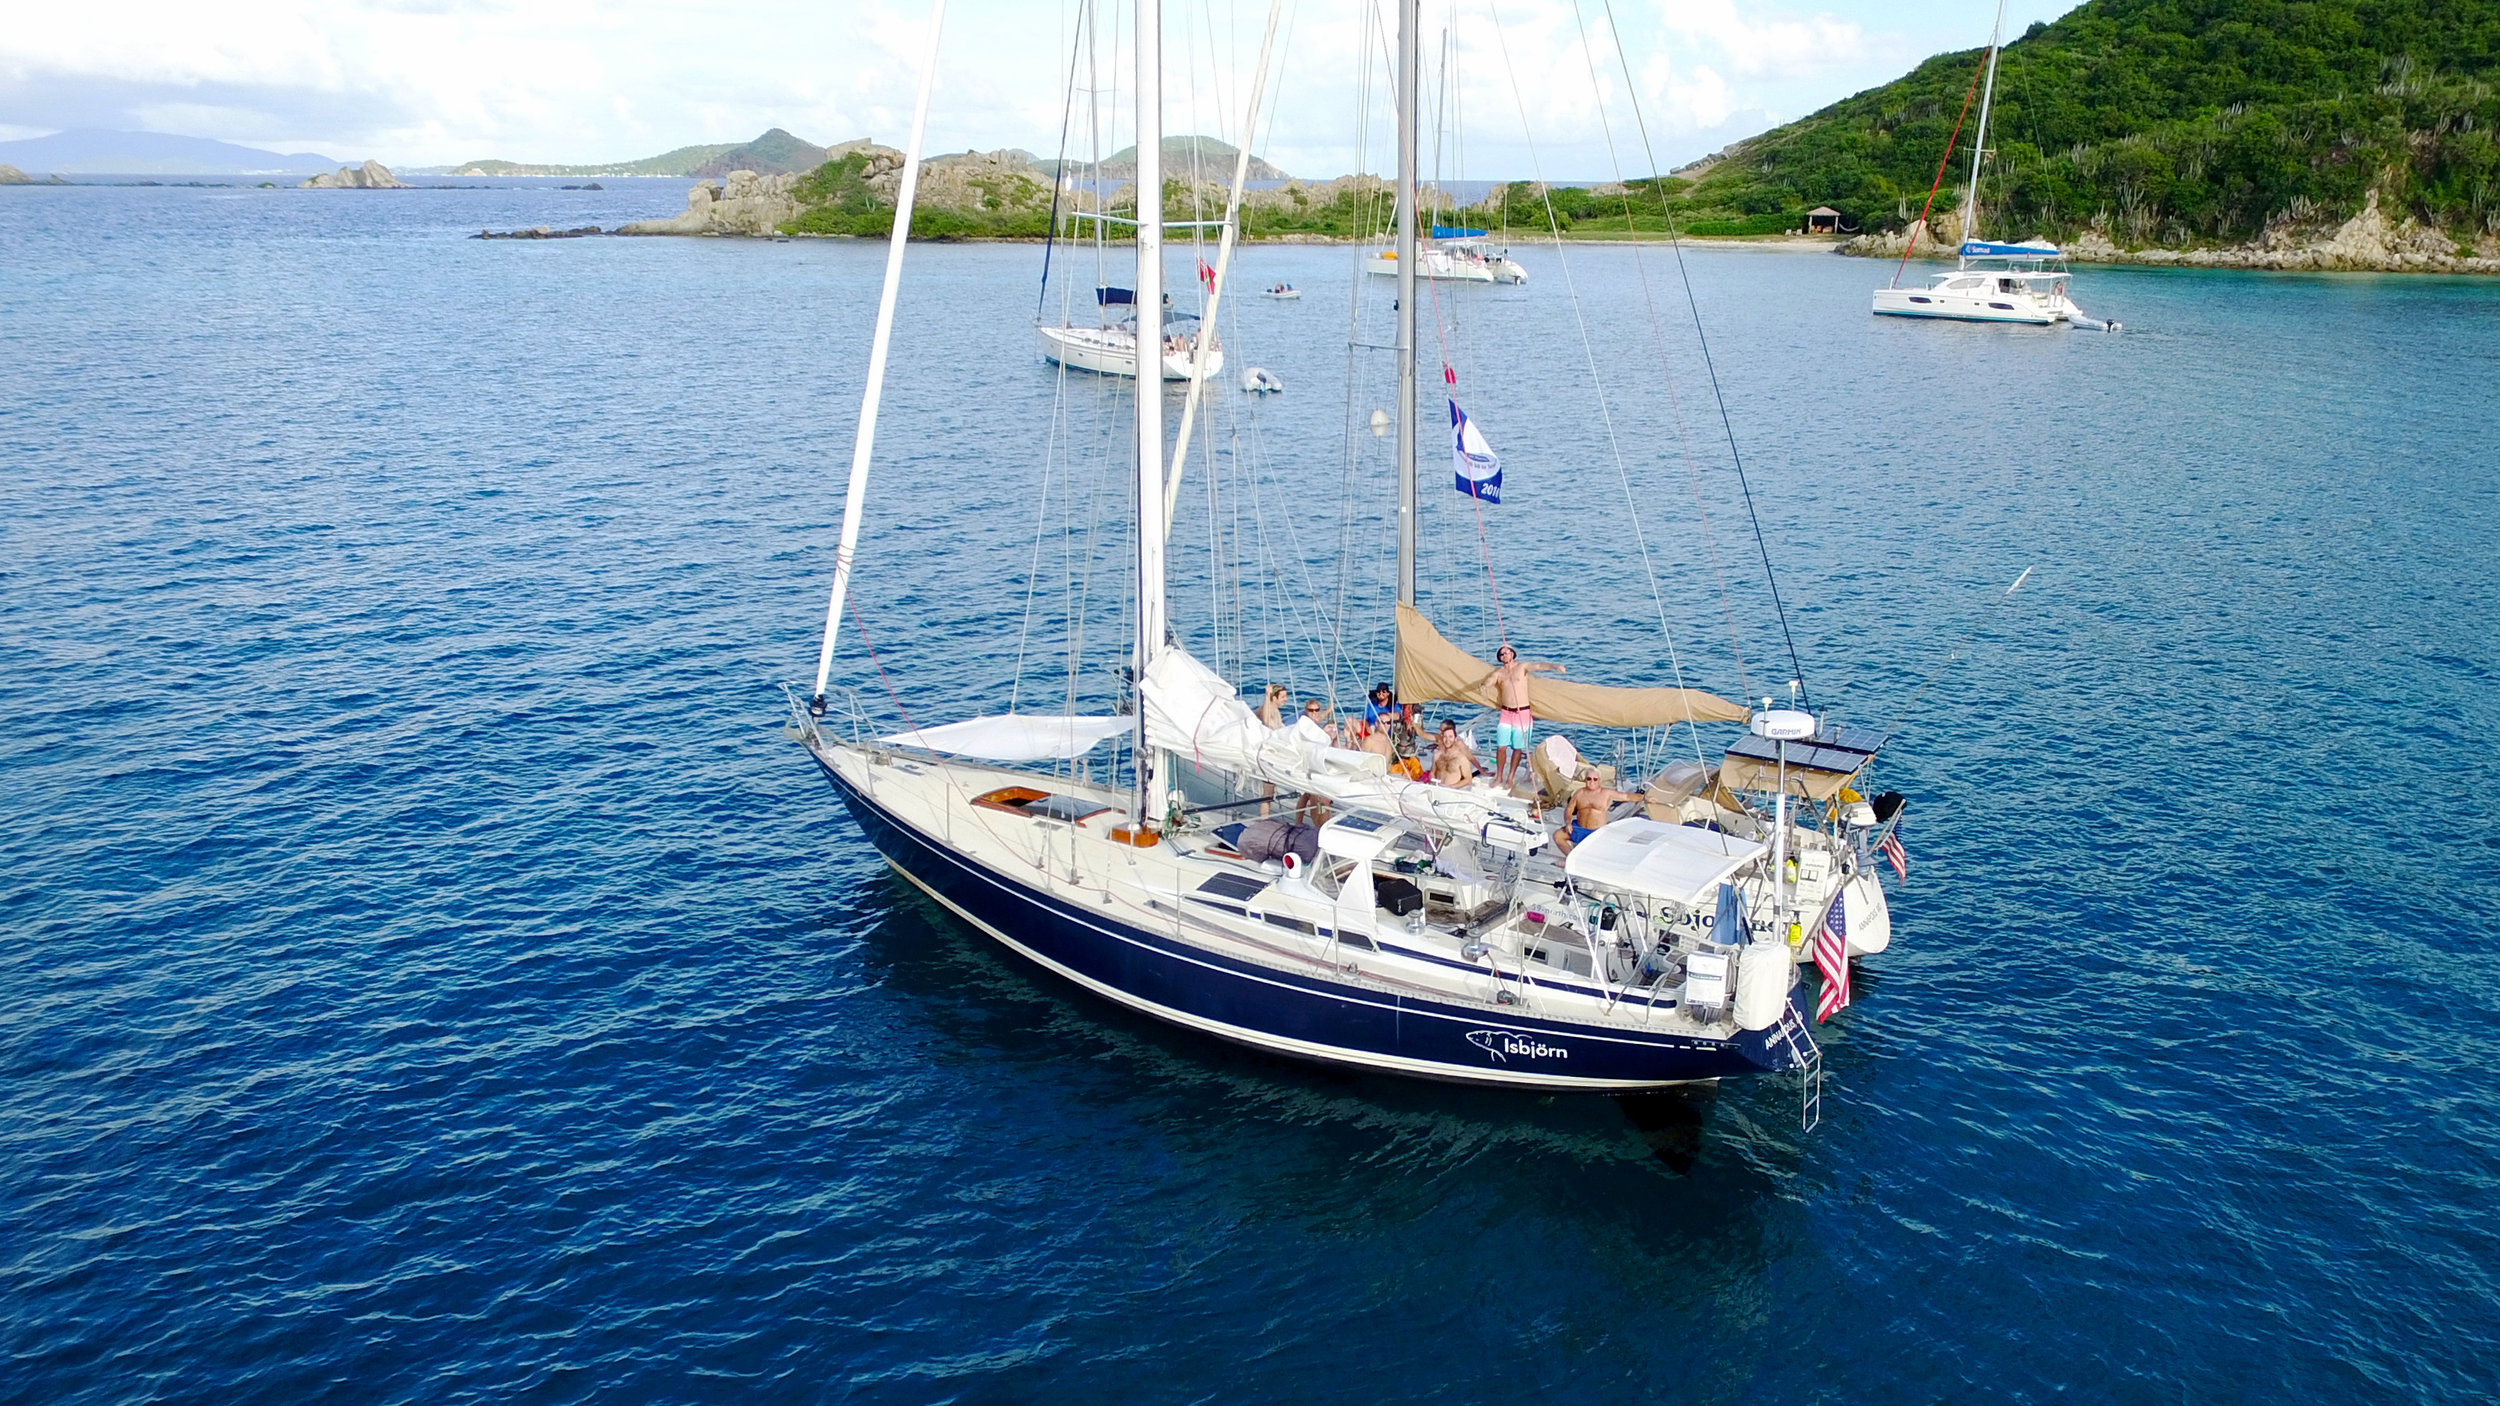 Isbjorn & Sojourner (Andy's Dad's boat) rafted up in the BVI.